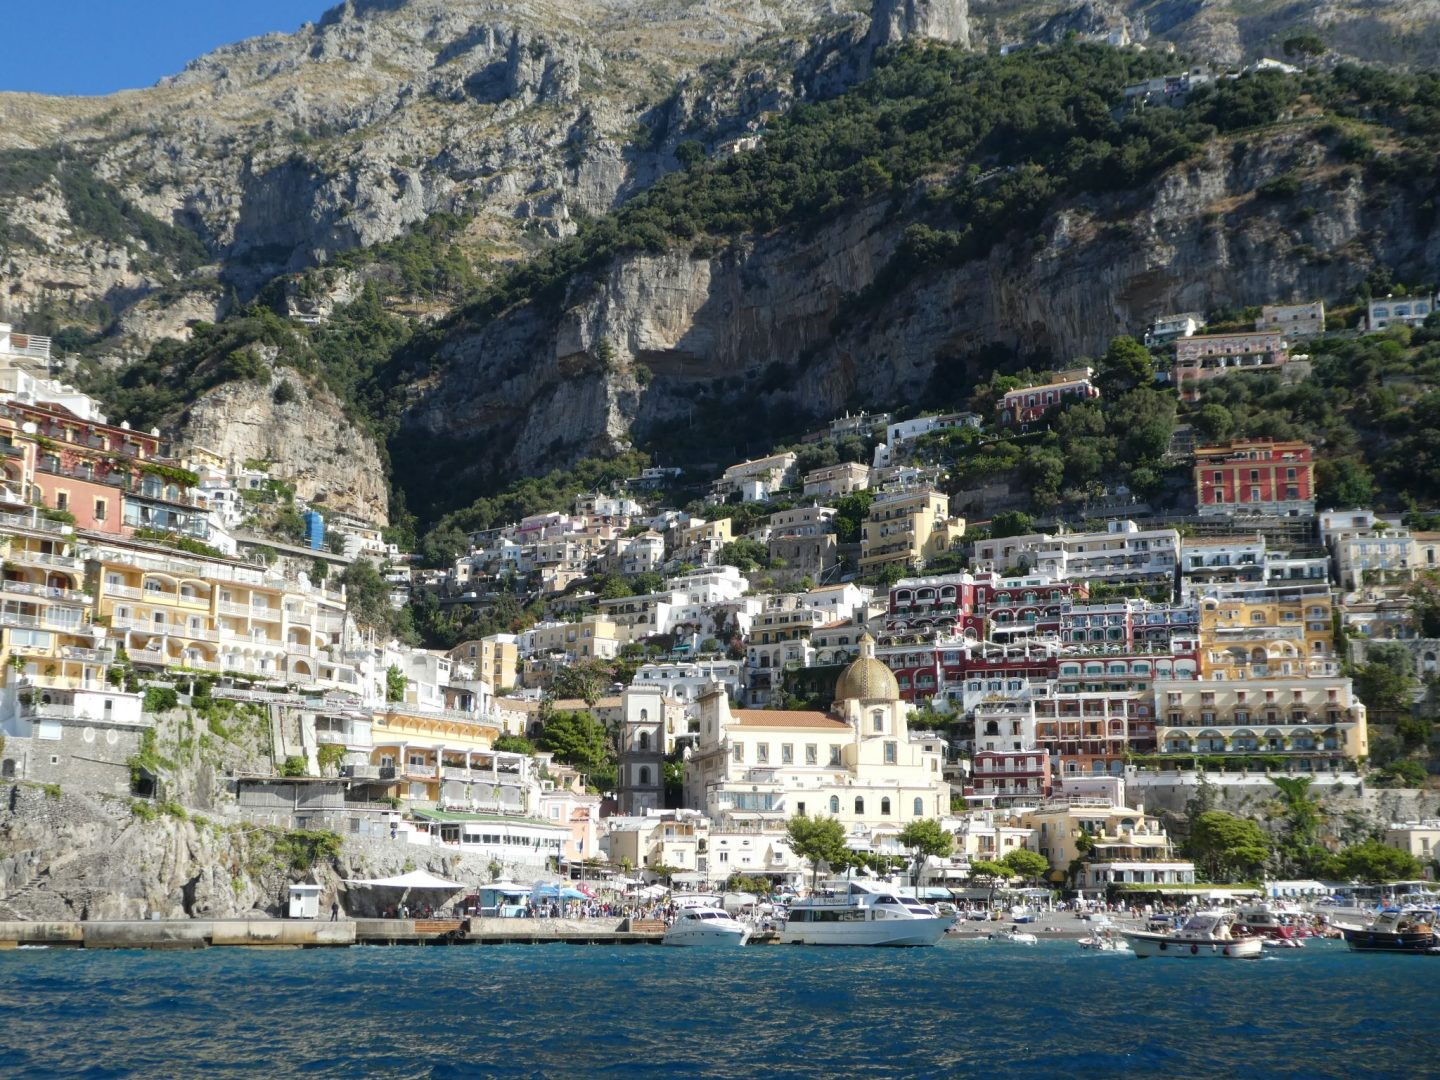 Amalfi Coast (18 to 24 September 2019)